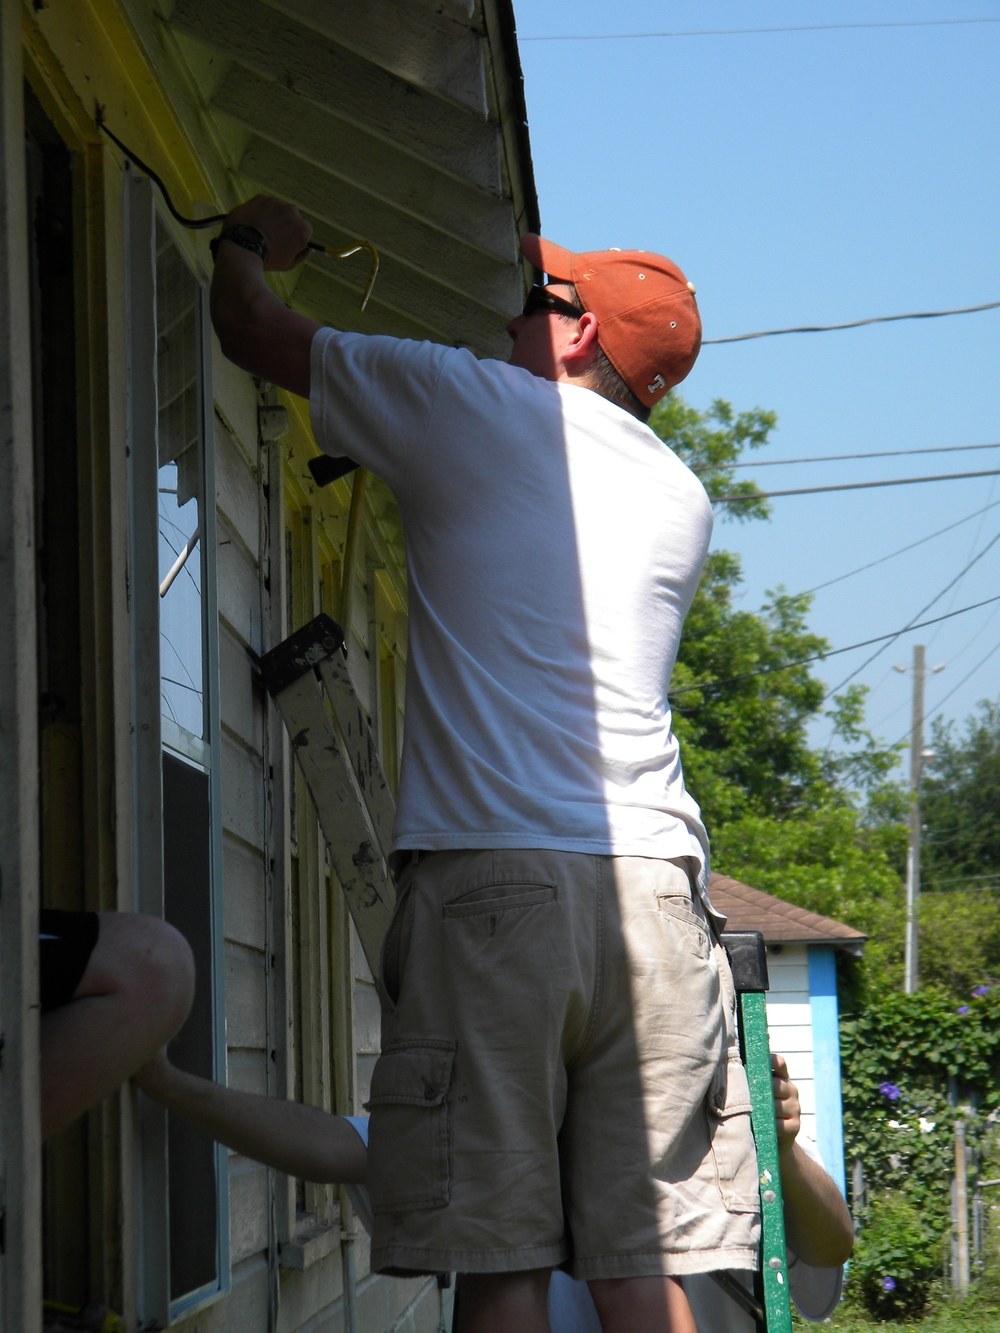 Students work on window frames to install new windows for family.